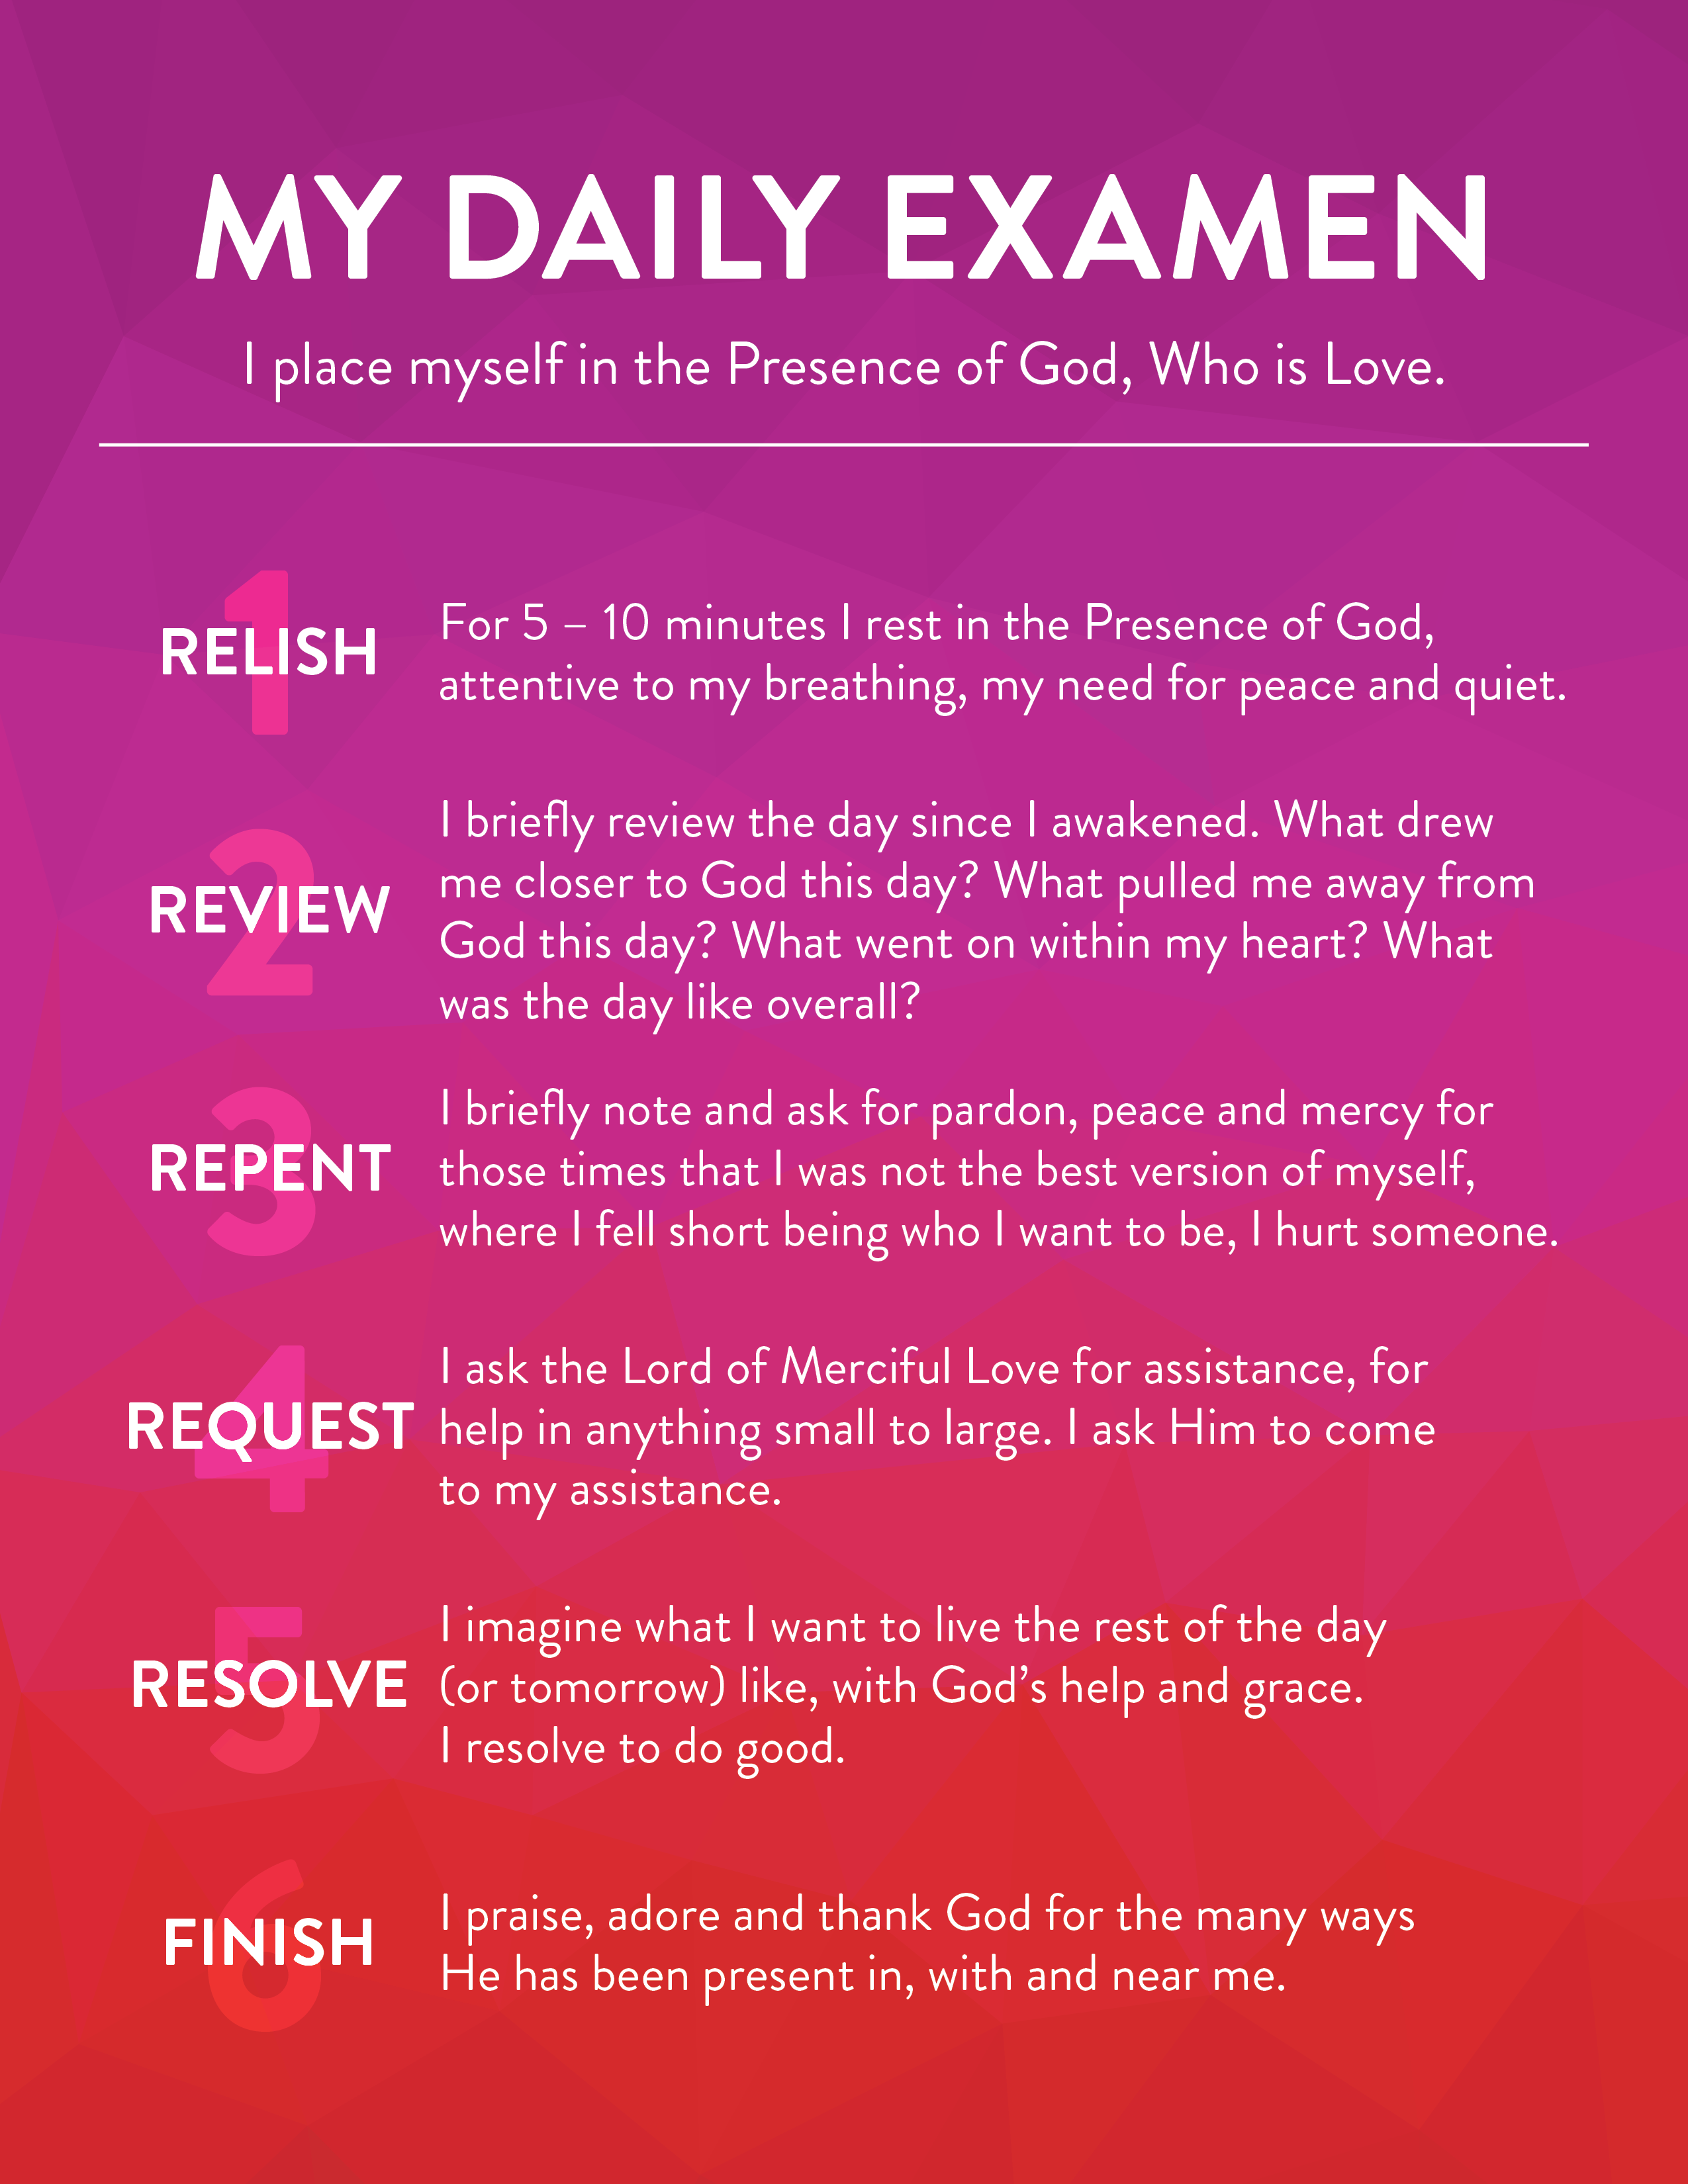 Six daily steps to help you re-center yourself in God